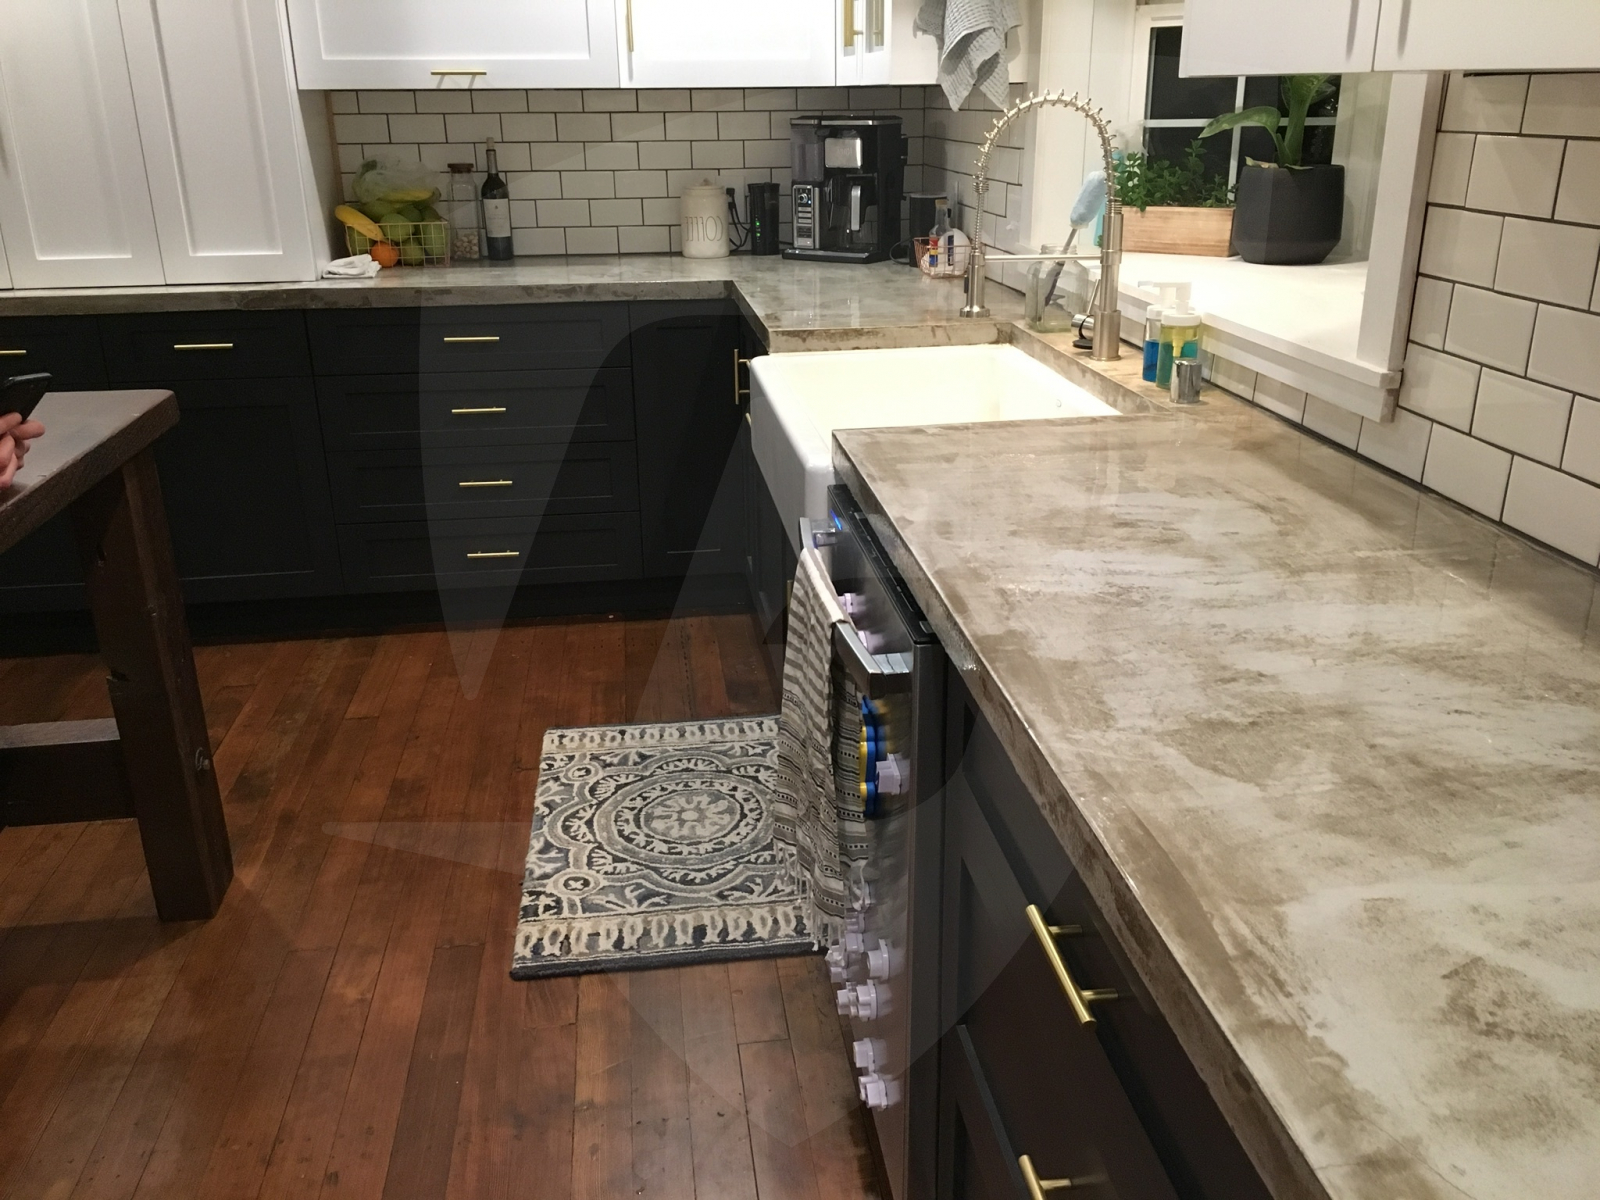 How to Protect Concrete Countertops